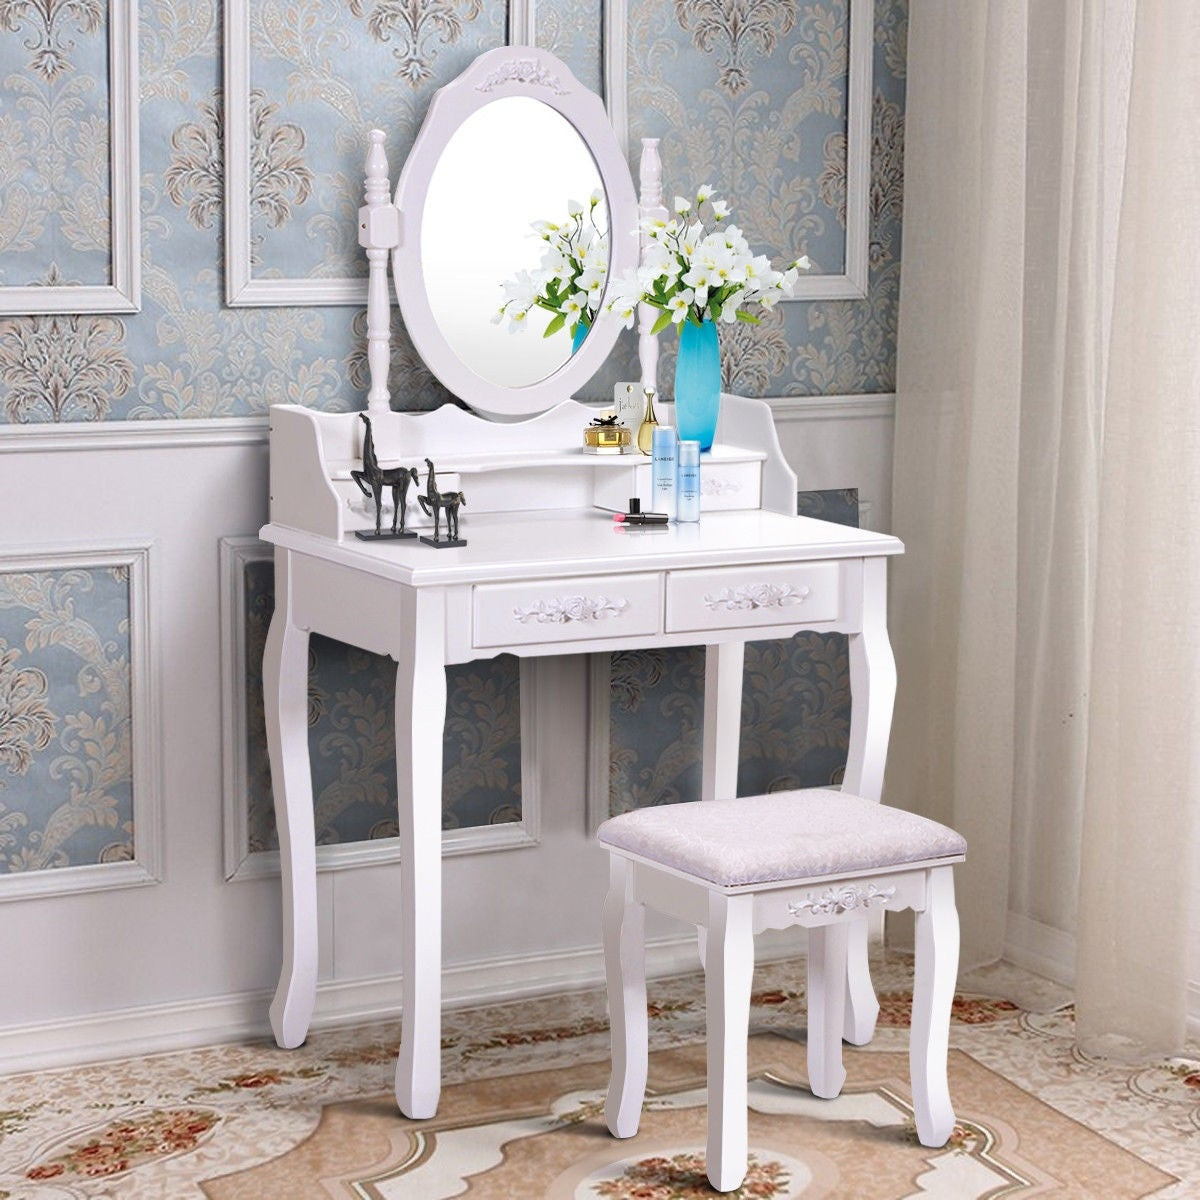 Delicieux Shop Costway White Vanity Wood Makeup Dressing Table Stool Set Bathroom  With Mirror + 4Drawers   Free Shipping Today   Overstock.com   16794558